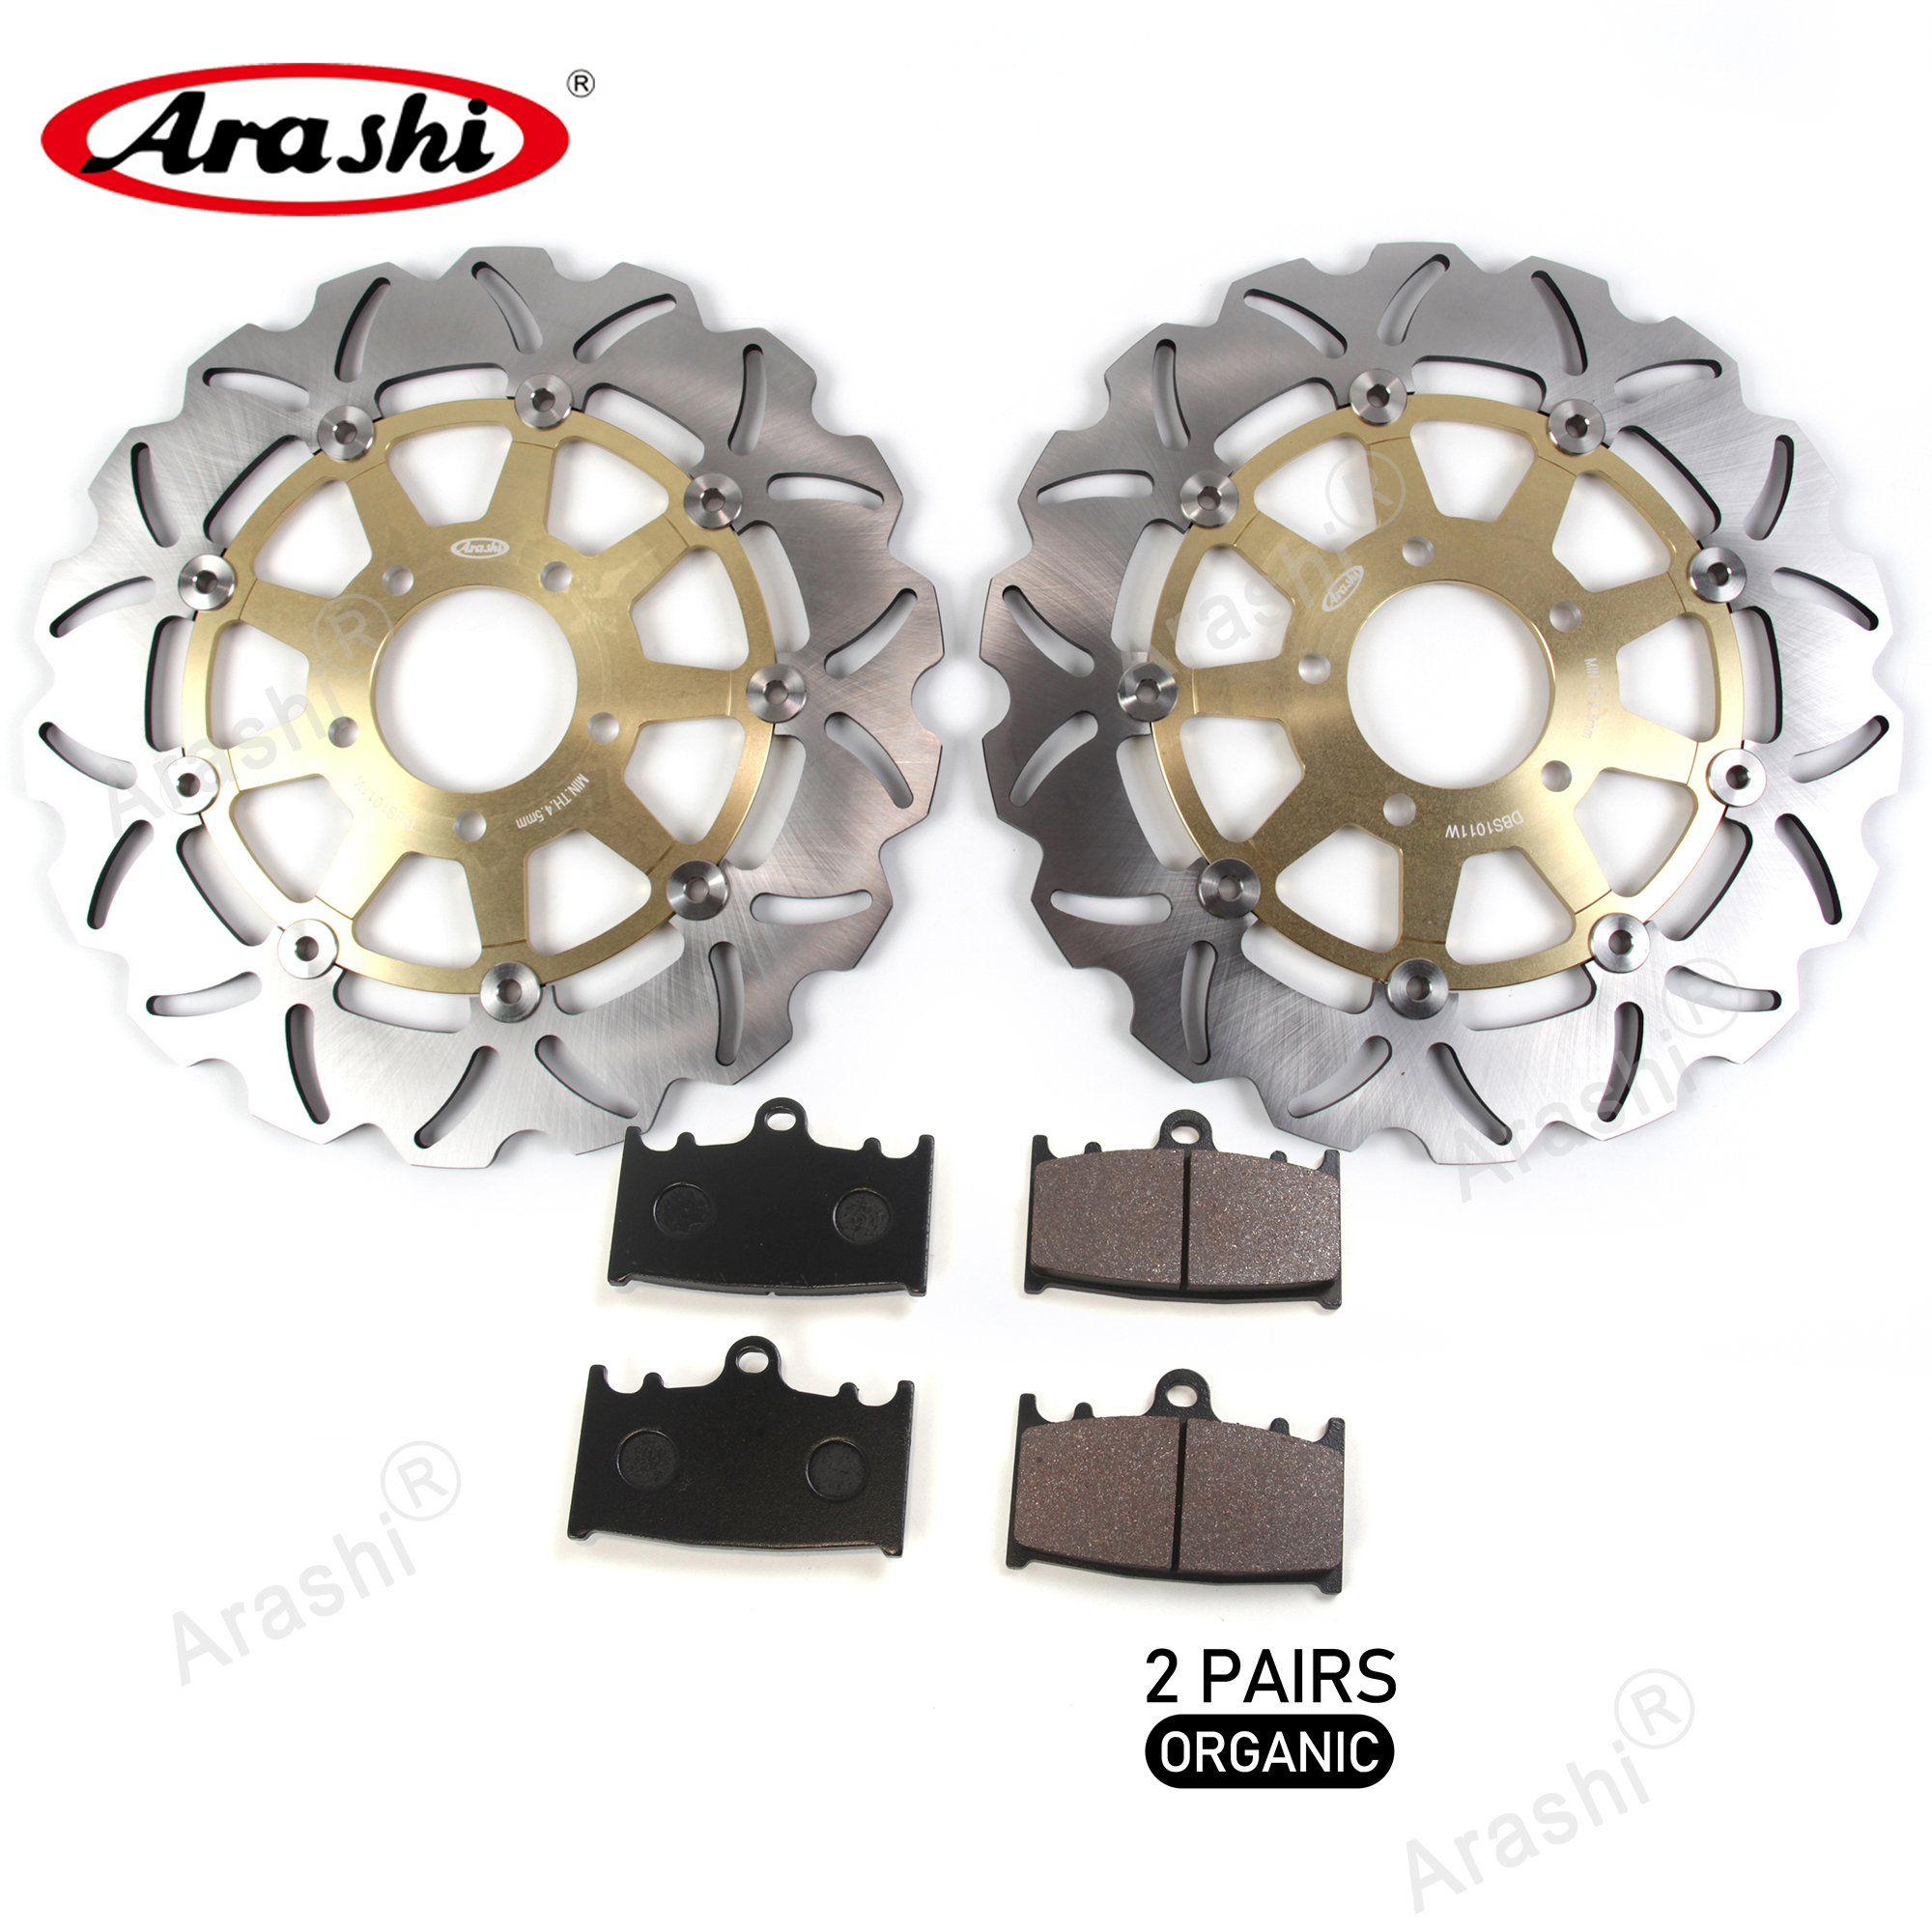 ARASHI For <font><b>SUZUKI</b></font> <font><b>SV1000</b></font> SV1000S <font><b>2003</b></font> - <font><b>2007</b></font> CNC Floating Front Brake Disks Rotors Disc Brake Pads SV SVS 1000 2004 2005 2006 image